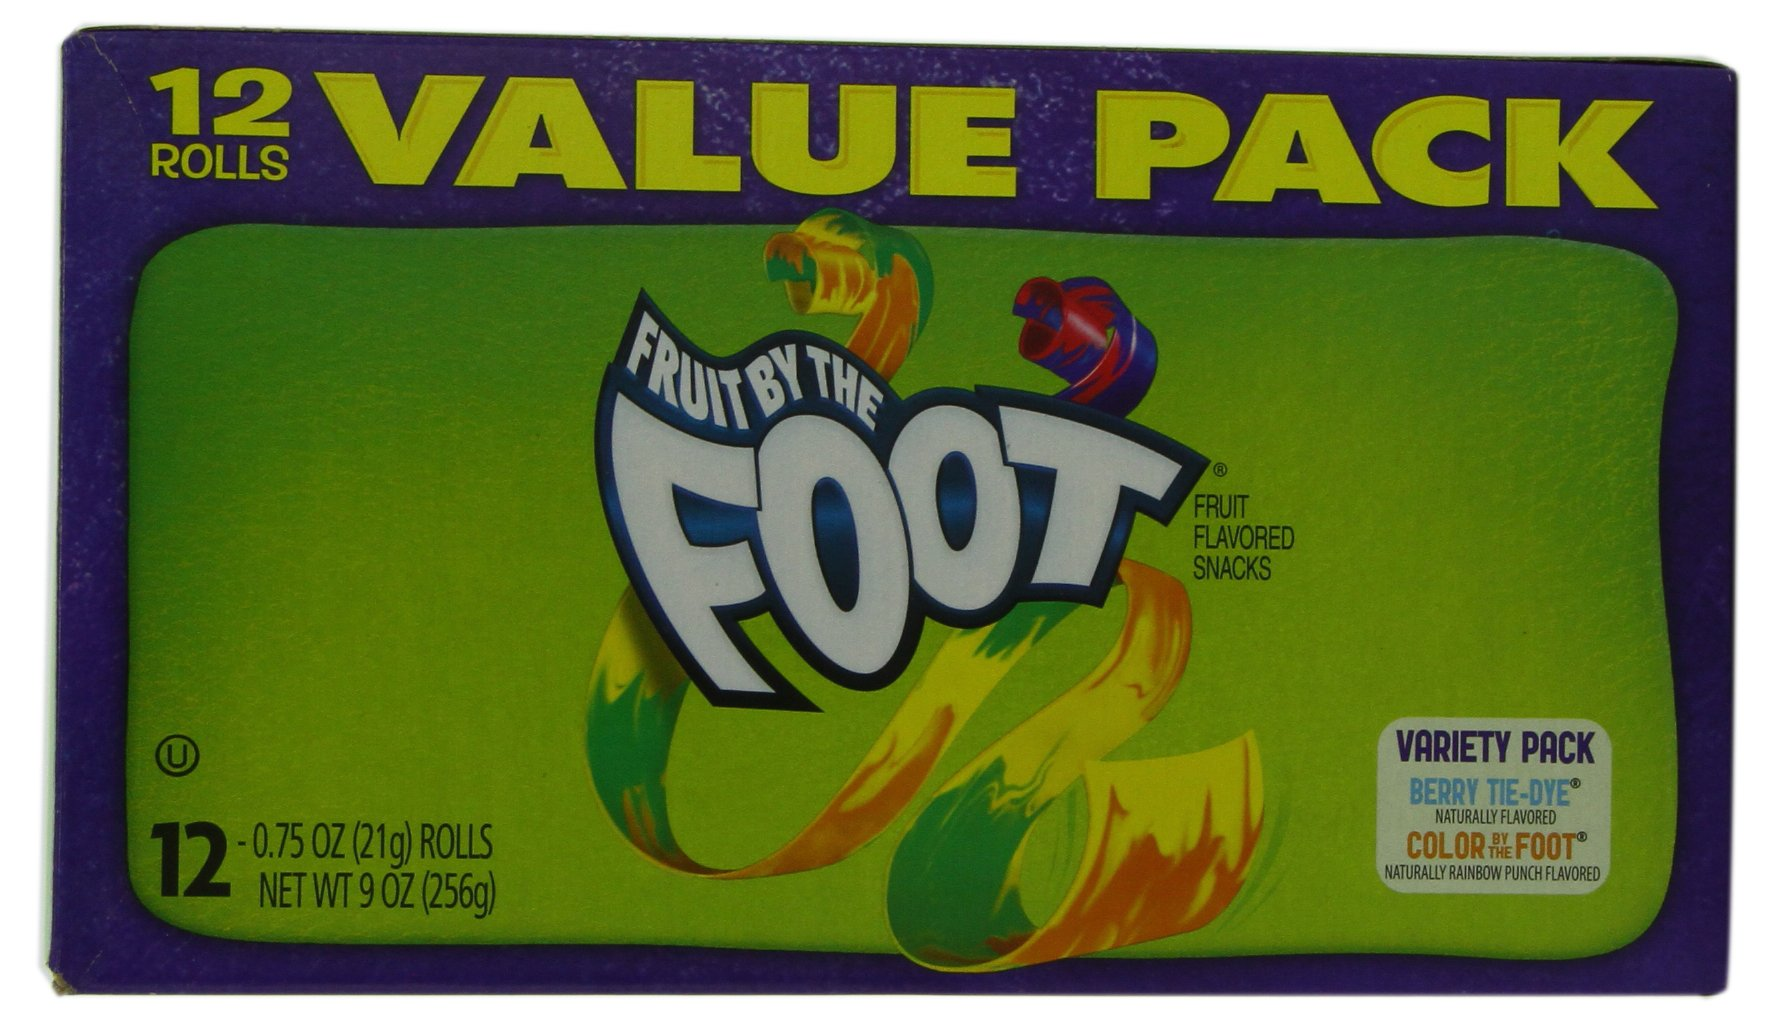 Betty Crocker Fruit Snacks, Fruit by the Foot, Variety Snack Pack, 12 Rolls, 0.75 oz Each (Pack of 6) by Fruit by the Foot (Image #5)